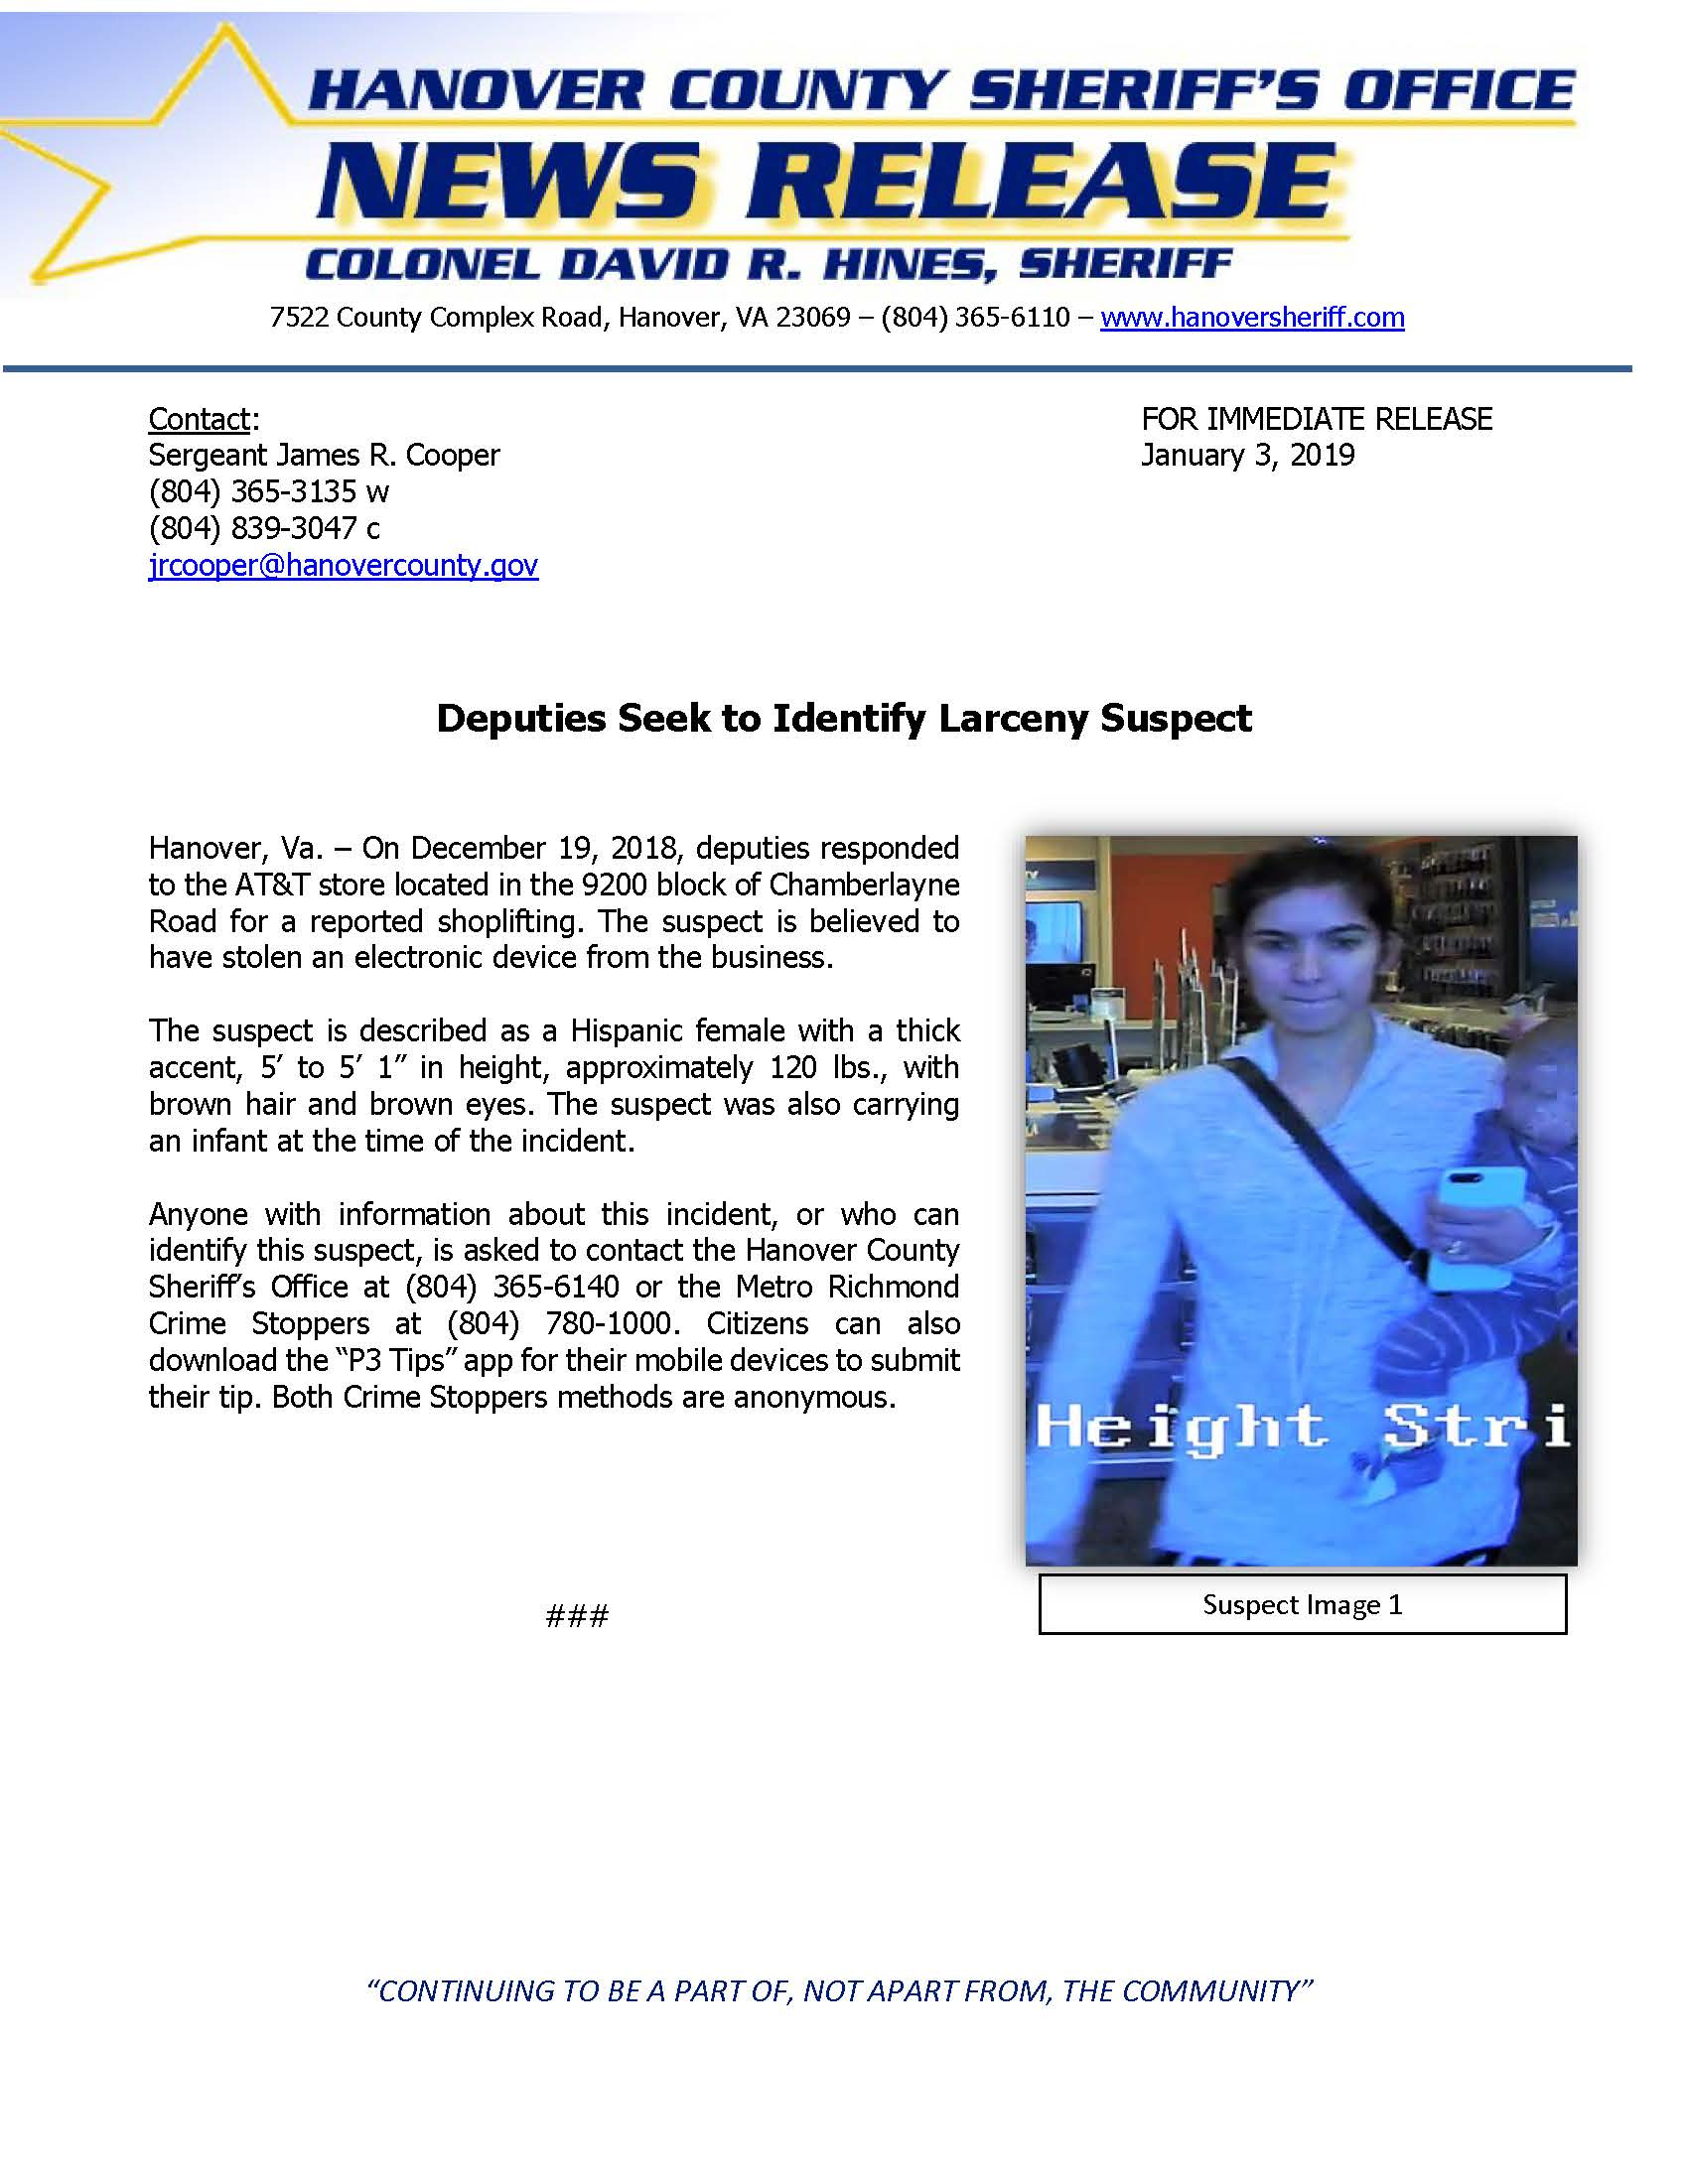 HCSO - Deputies Seek to Identify Larceny Suspect- January 3, 2019